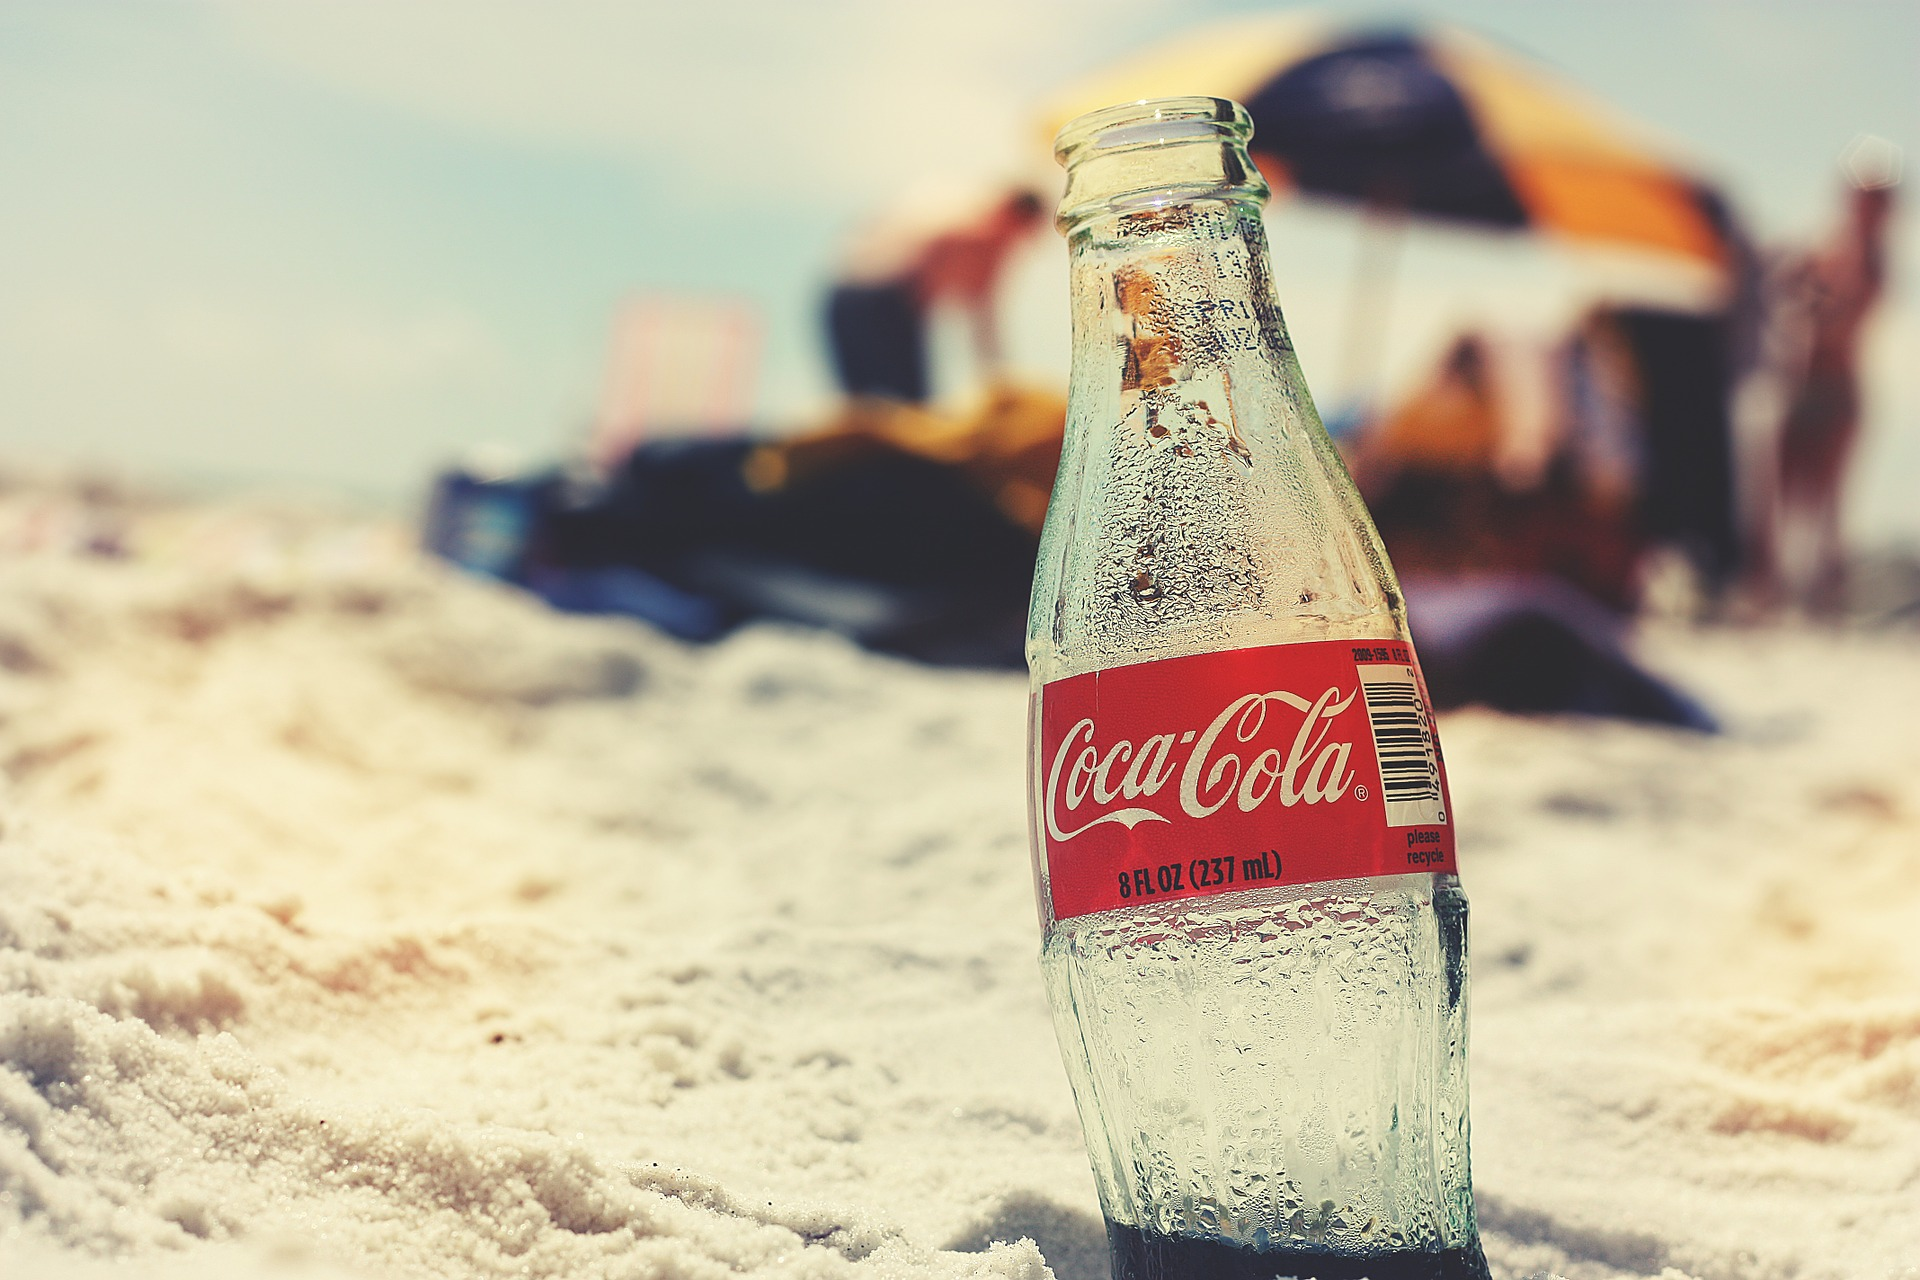 Sometimes Research can lead you astray: The Coca Cola Case Study